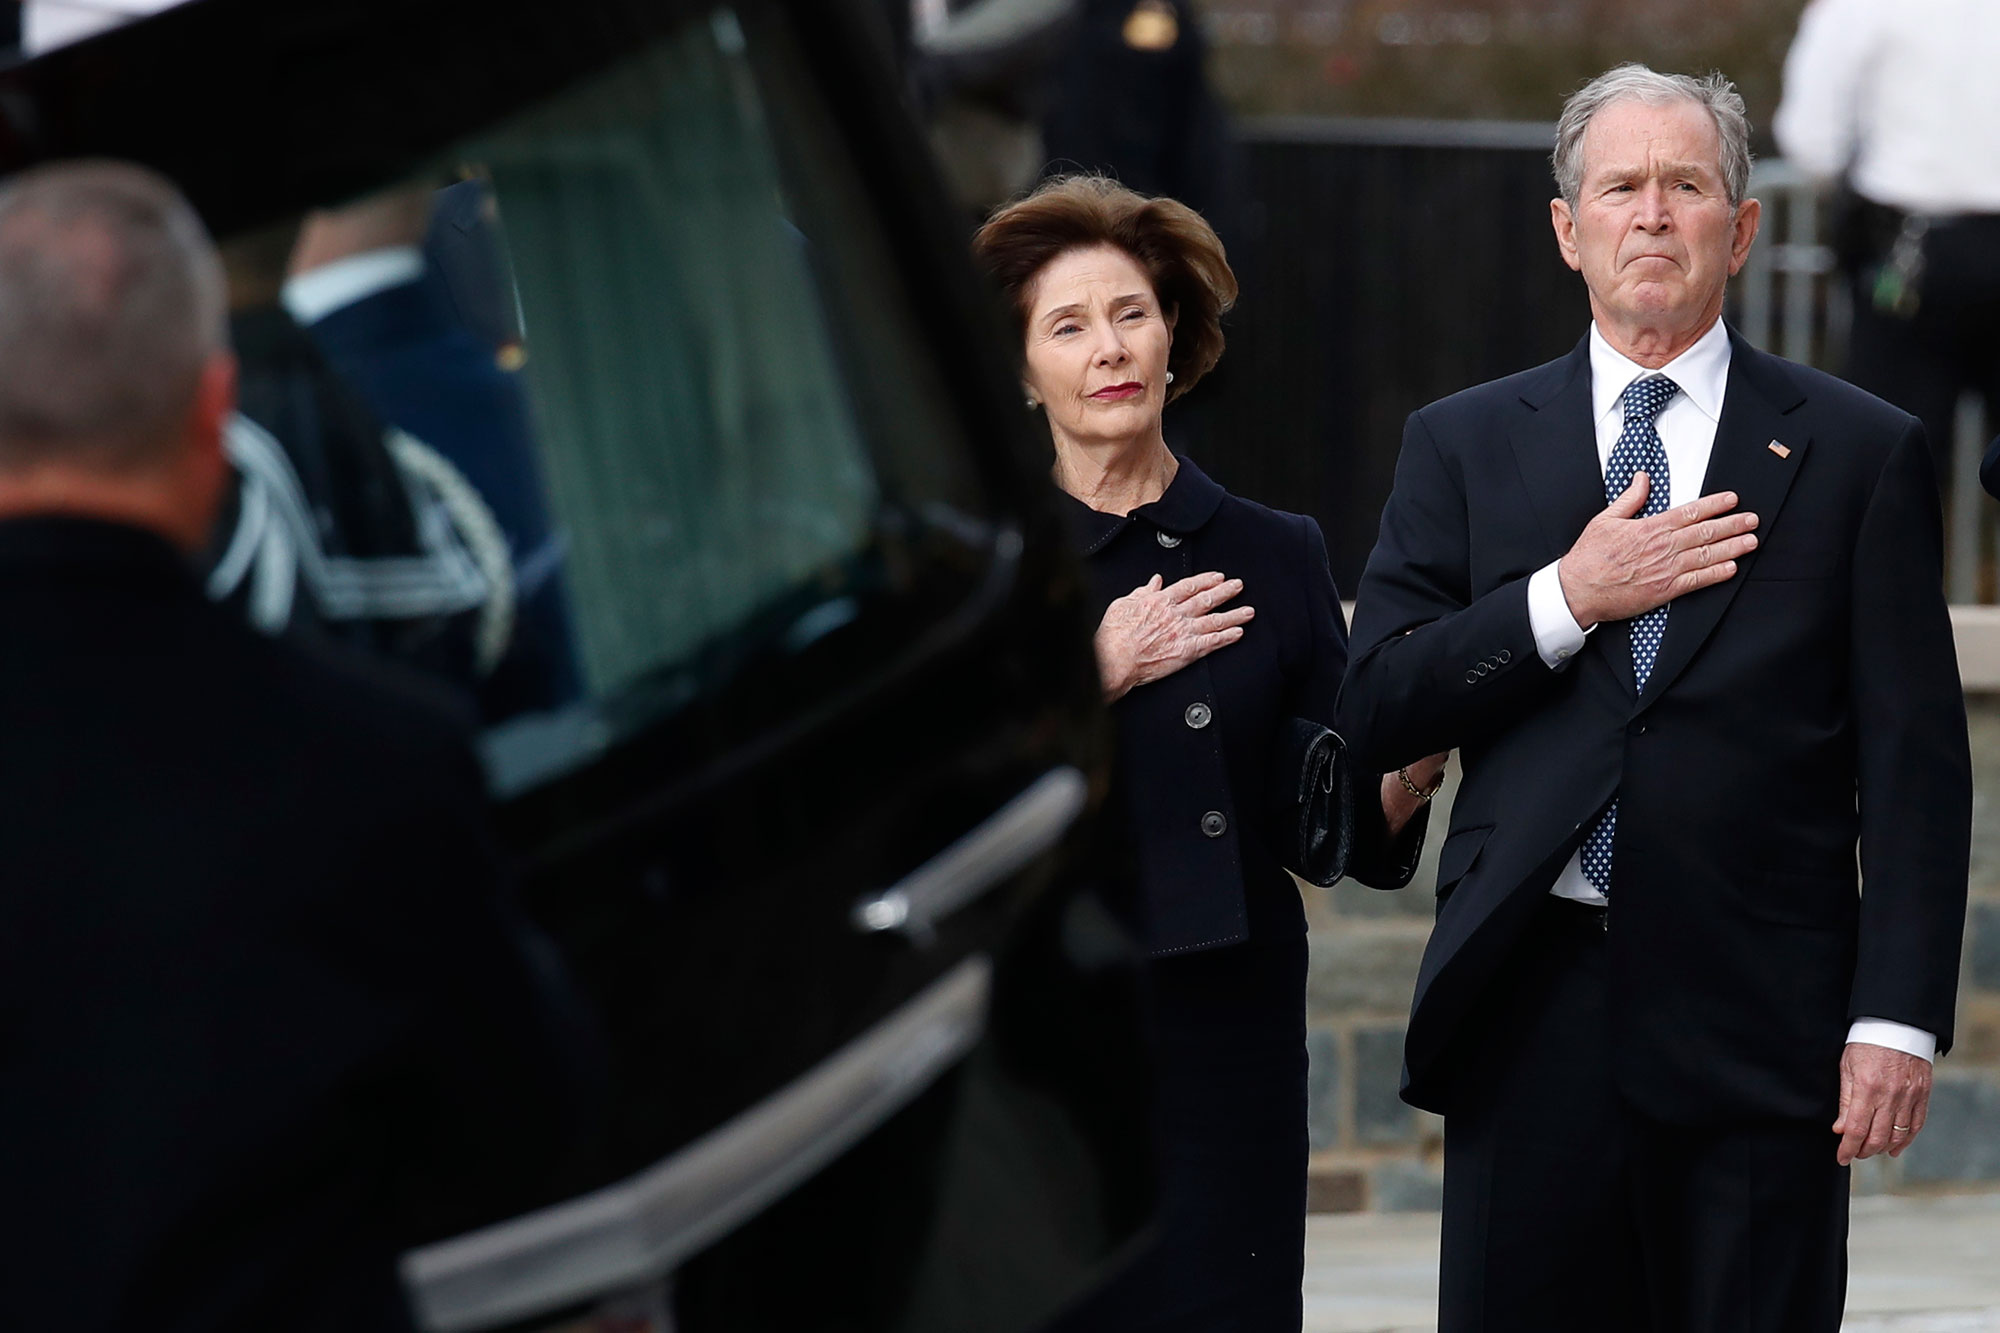 "<div class=""meta image-caption""><div class=""origin-logo origin-image none""><span>none</span></div><span class=""caption-text"">George W. Bush and Laura Bush watch as the flag-draped casket of his father is carried by  joint services military honor guard to a State Funeral in Washington. (Alex Brandon - Pool/Getty Images)</span></div>"